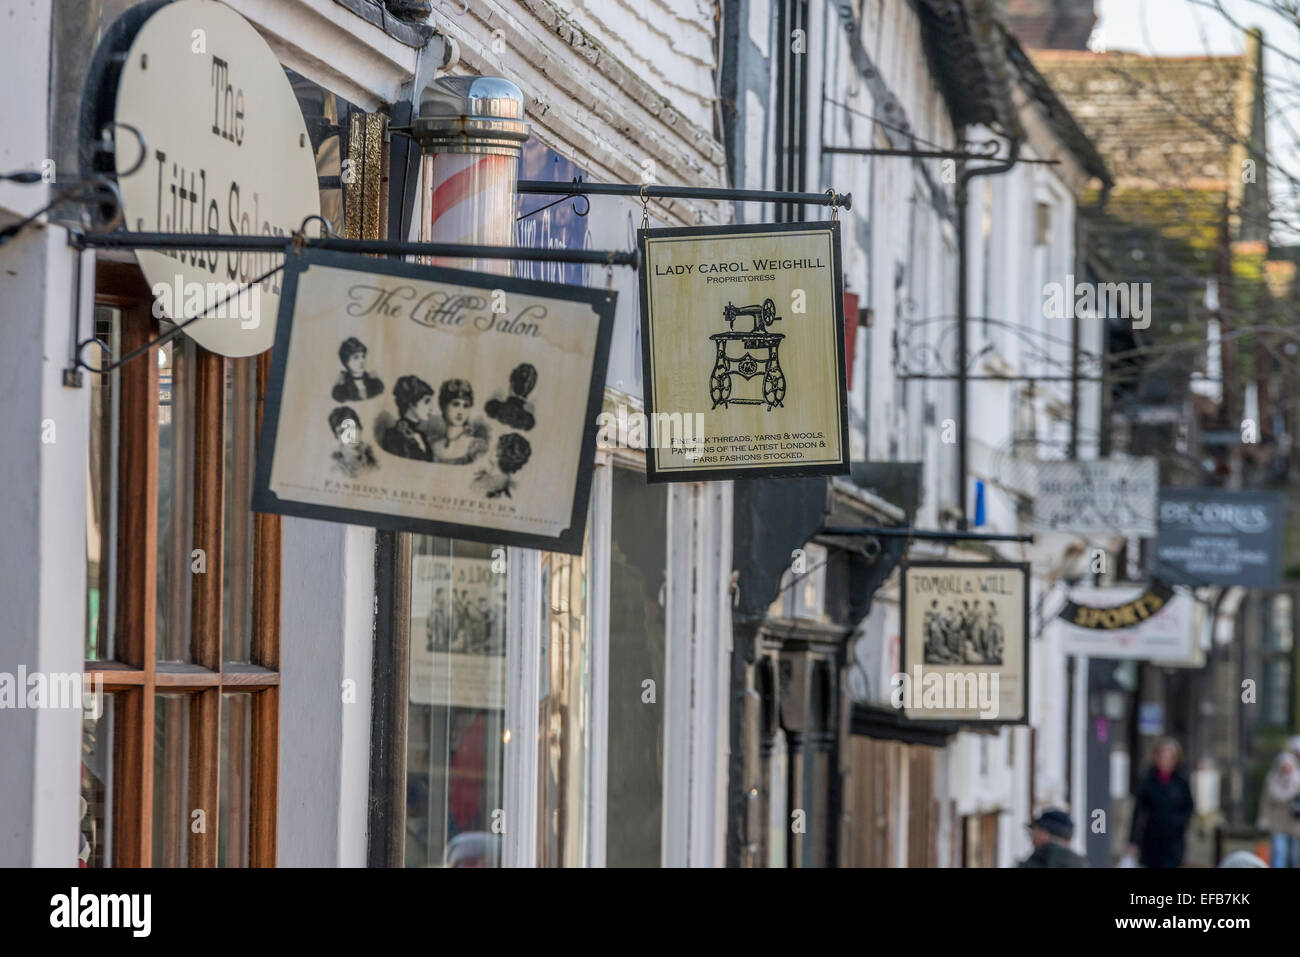 East Grinstead. West Sussex. England. UK - Stock Image